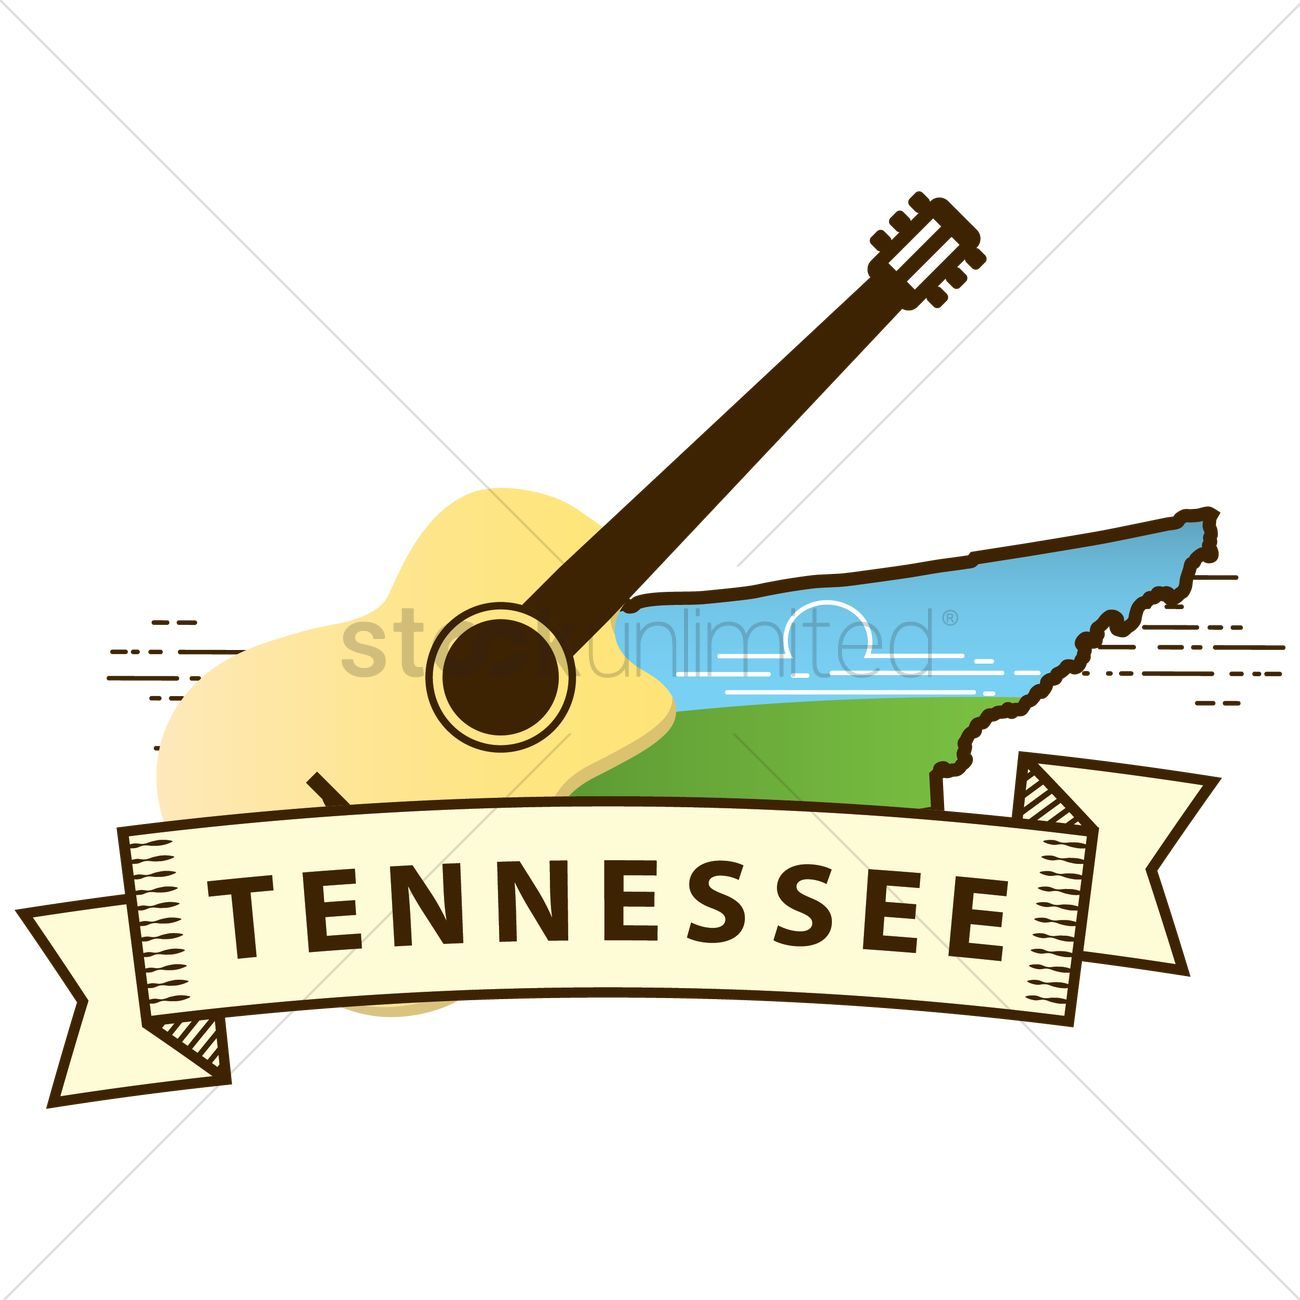 Tennessee State Map Vector Image 1564618 Stockunlimited